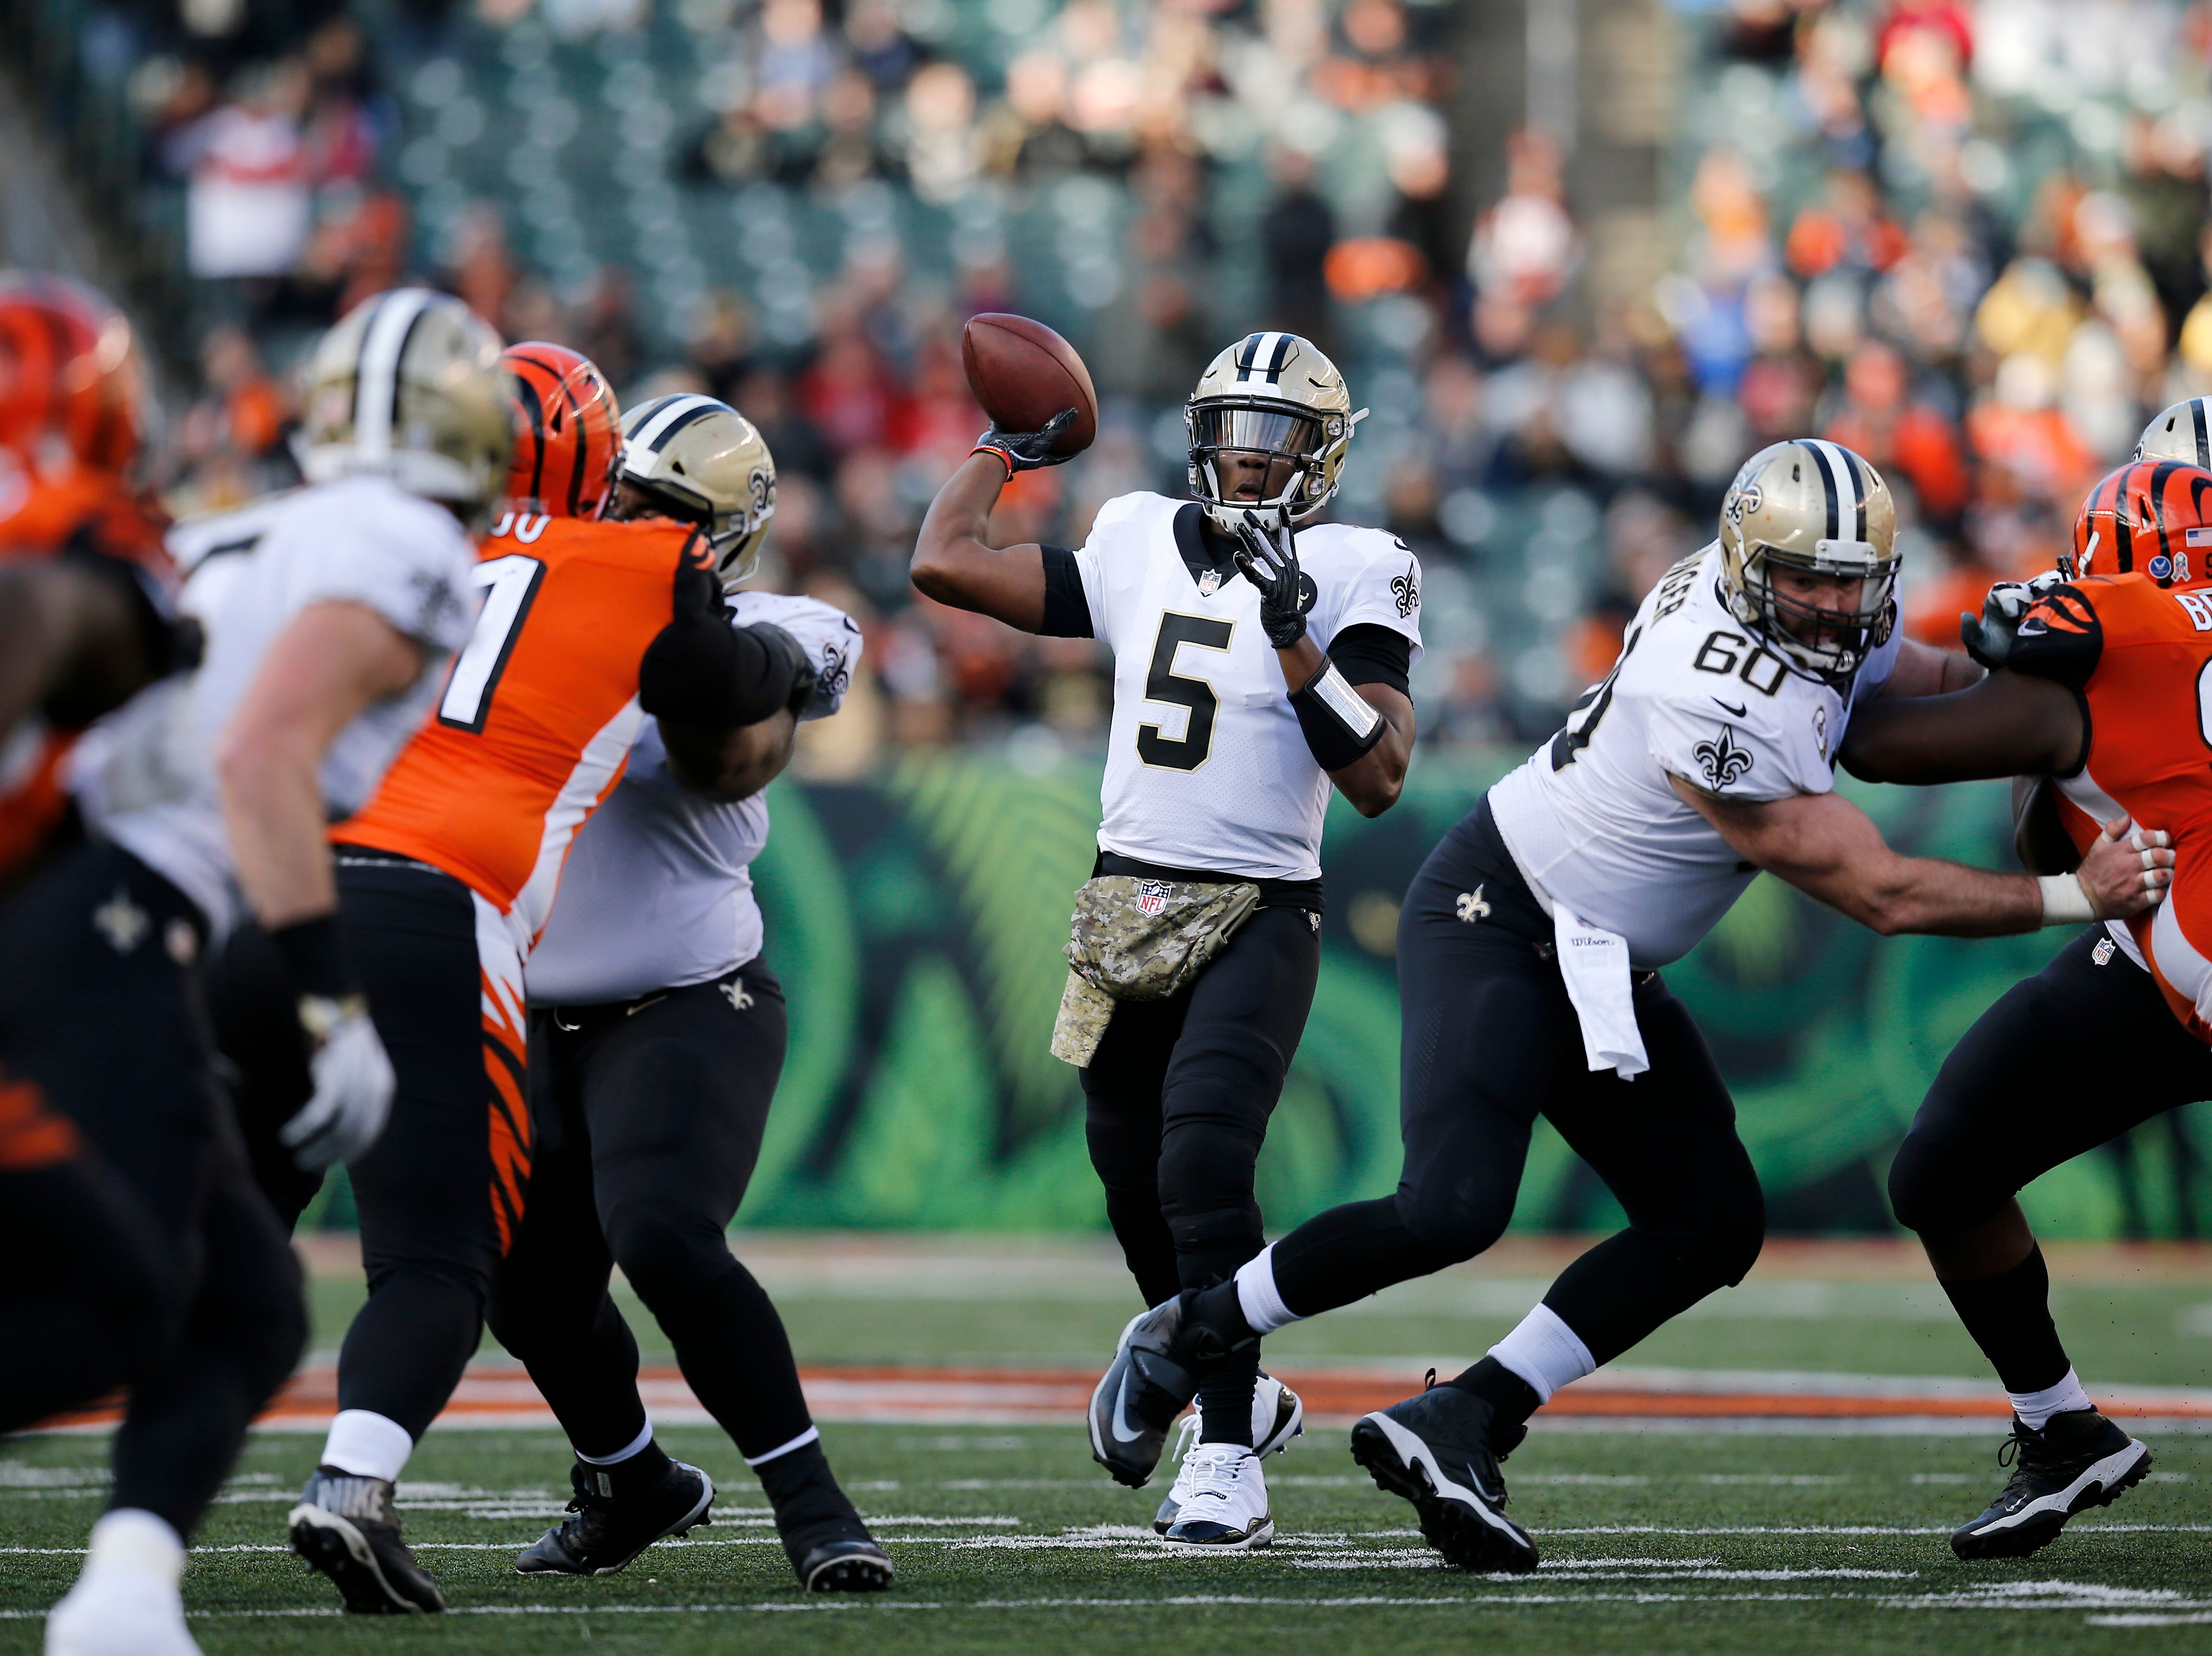 New Orleans Saints quarterback Teddy Bridgewater (5) throws a pass in the fourth quarter of the NFL Week 10 game between the Cincinnati Bengals and the New Orleans Saints at Paul Brown Stadium in downtown Cincinnati on Sunday, Nov. 11, 2018. The Saints beat the Bengals 51-14.